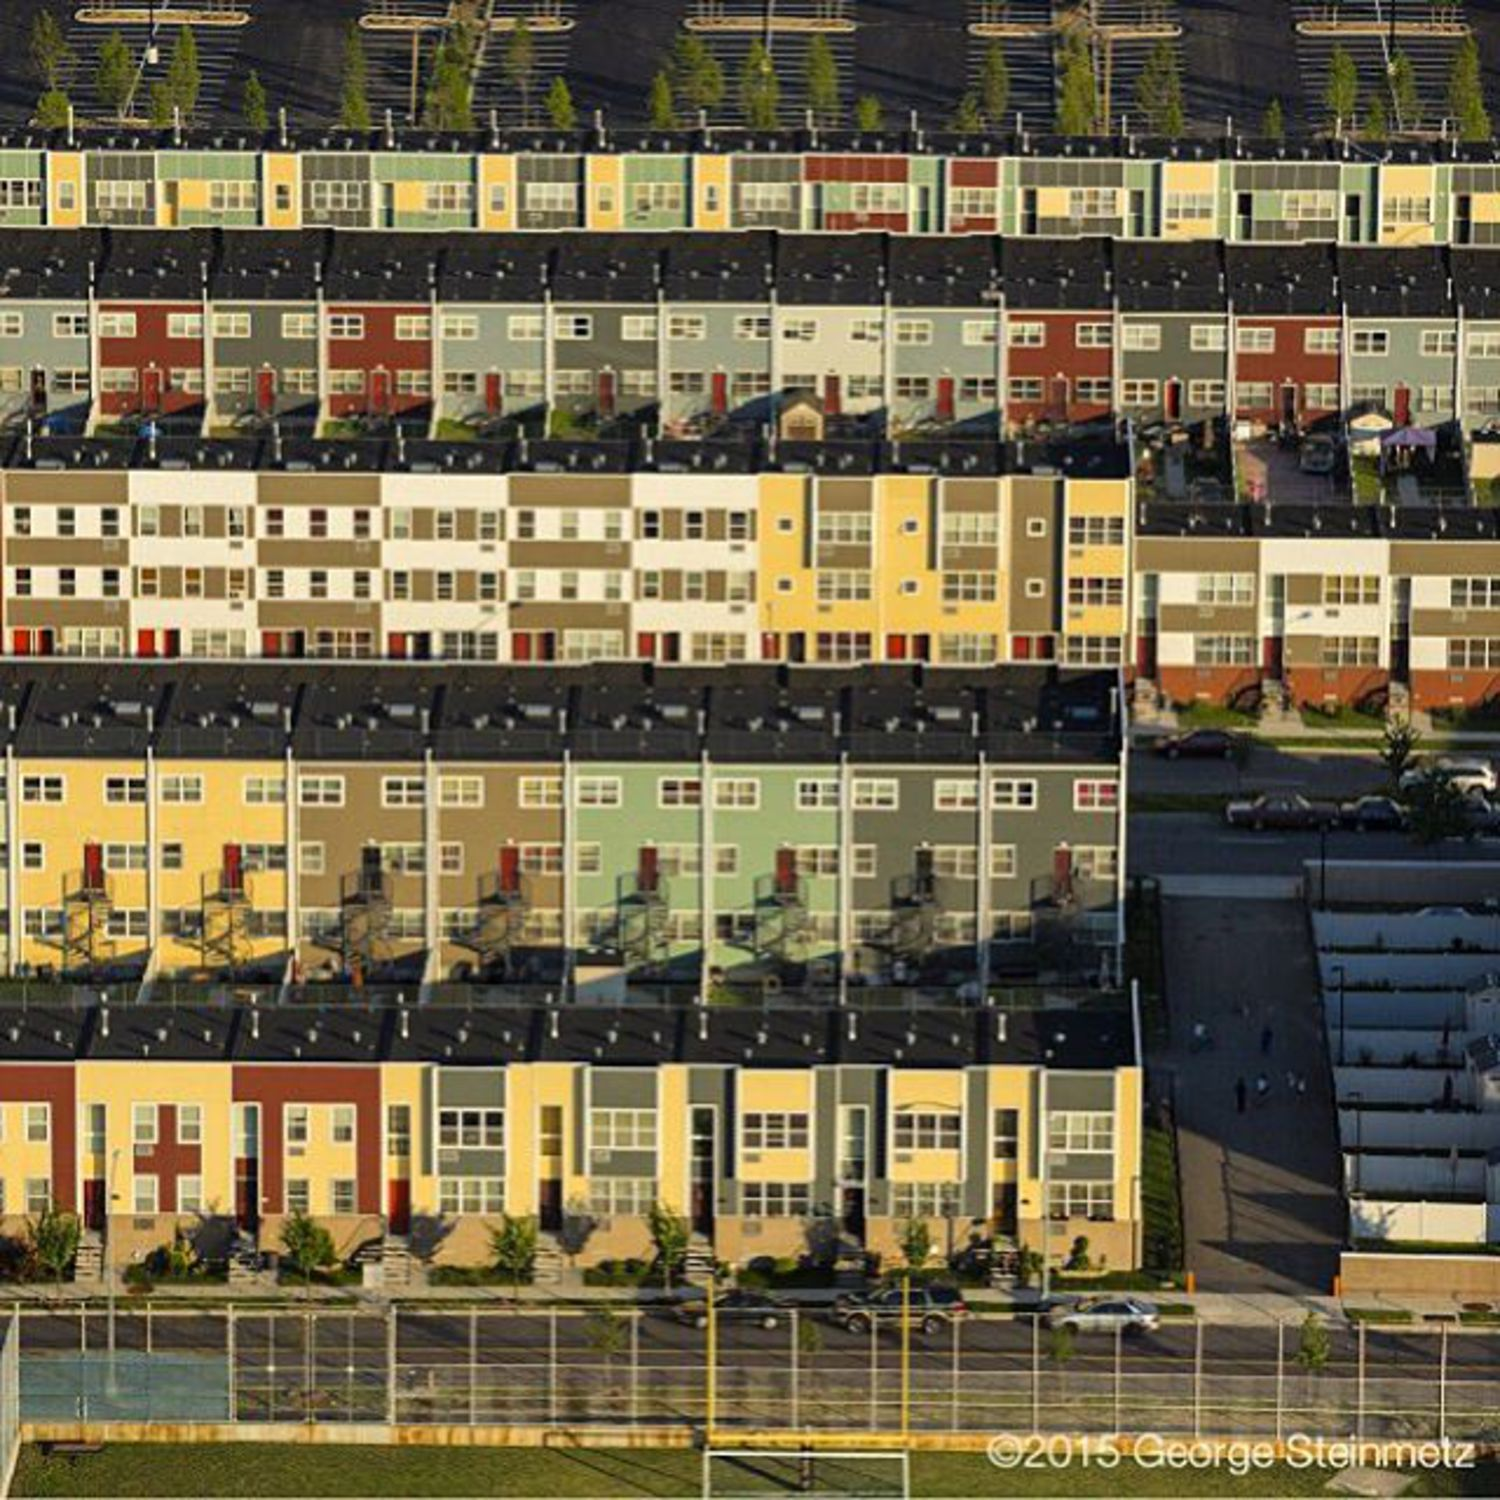 Photograph by George Steinmetz @geosteinmetz / @thephotosociety One of the NYC's newest neighborhoods, Spring Creek Nehemiah is home to 233 first-time homeowners who won a lottery sponsored by the city.  Located in Brooklyn's East New York, it is composed of prefabricated one-, two- and three-family homes assembled at the Brooklyn Navy Yard. Homeowners put down as little as $8,000 to purchase their houses, which ranged in price from $158,000 to $488,000.